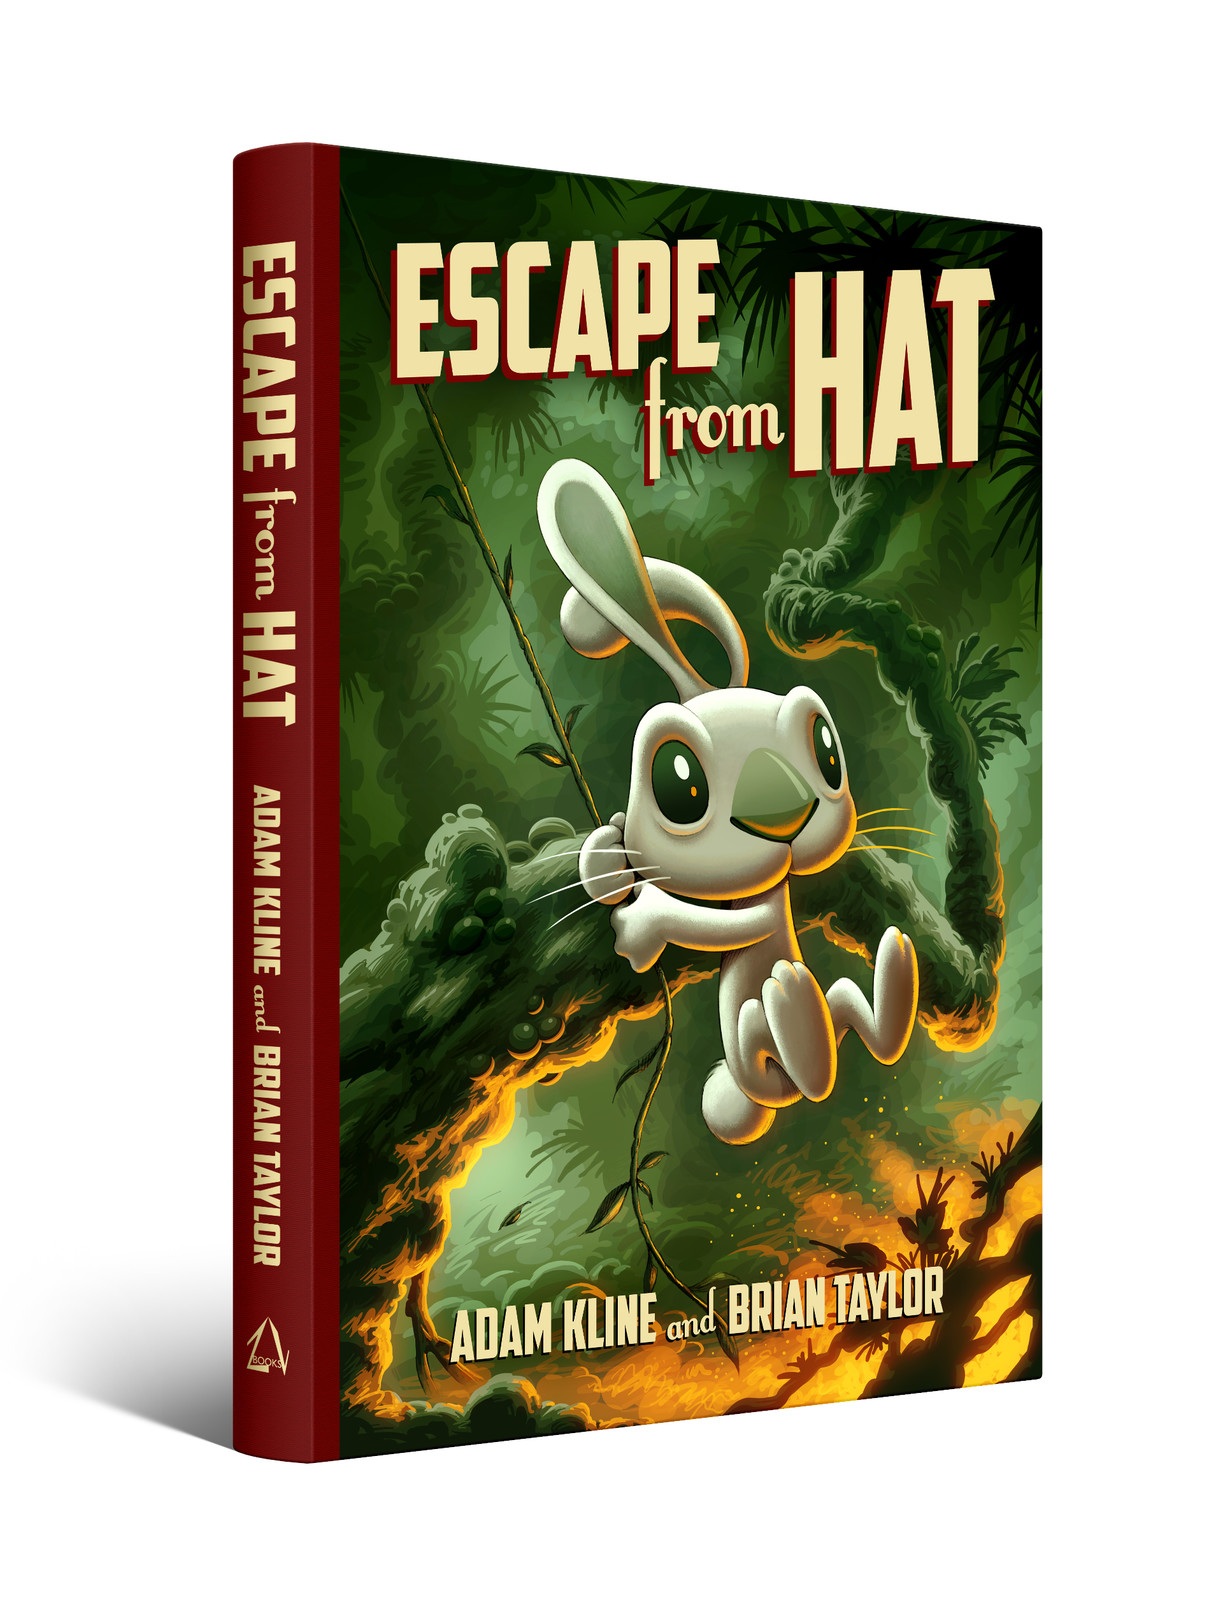 Escape from Hat book cover design